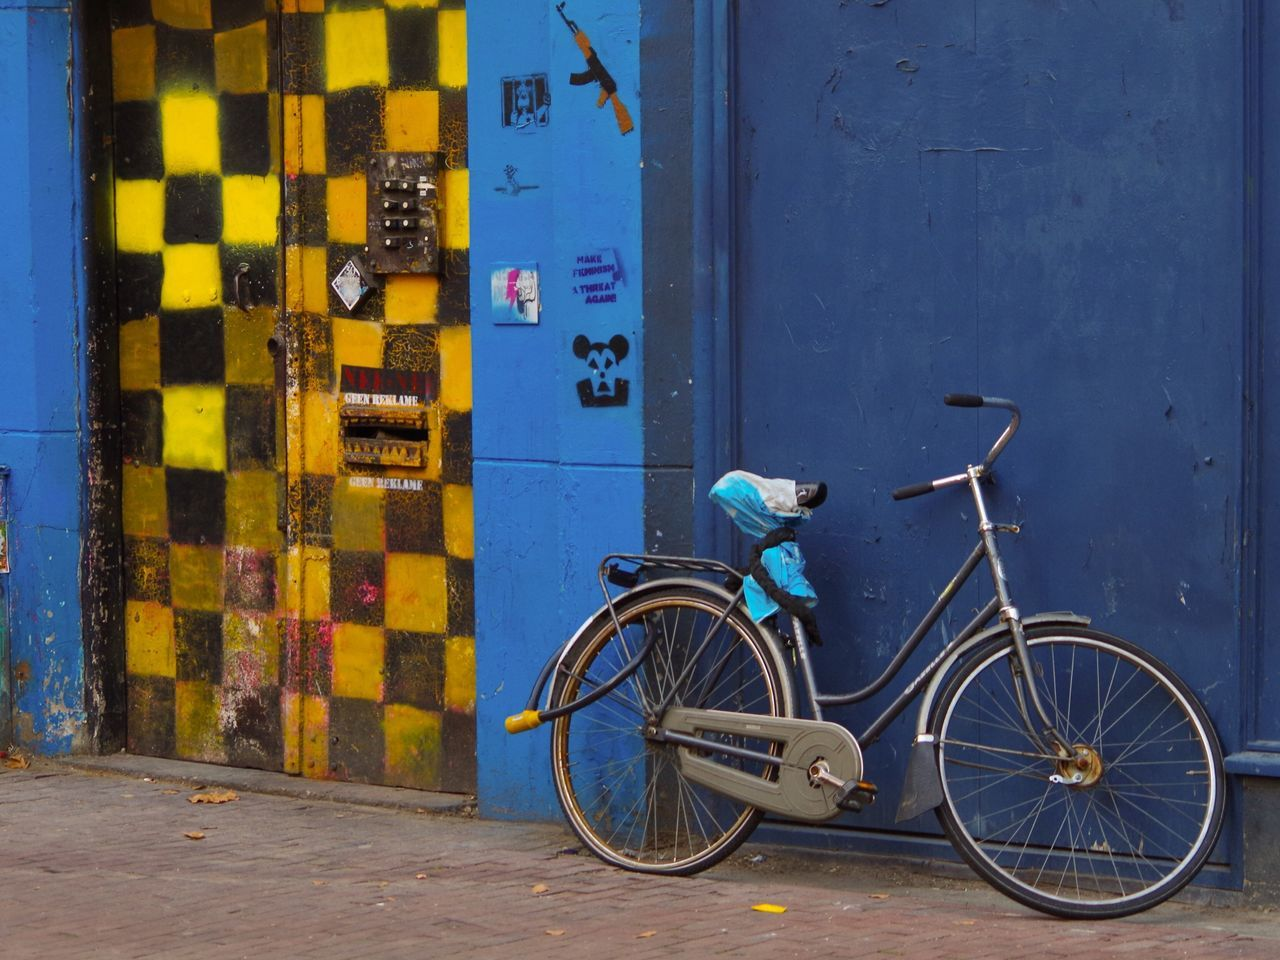 CyclingUnites Transportation Stationary Bicycle Architecture Built Structure Real People Land Vehicle Outdoors Building Exterior One Person Day